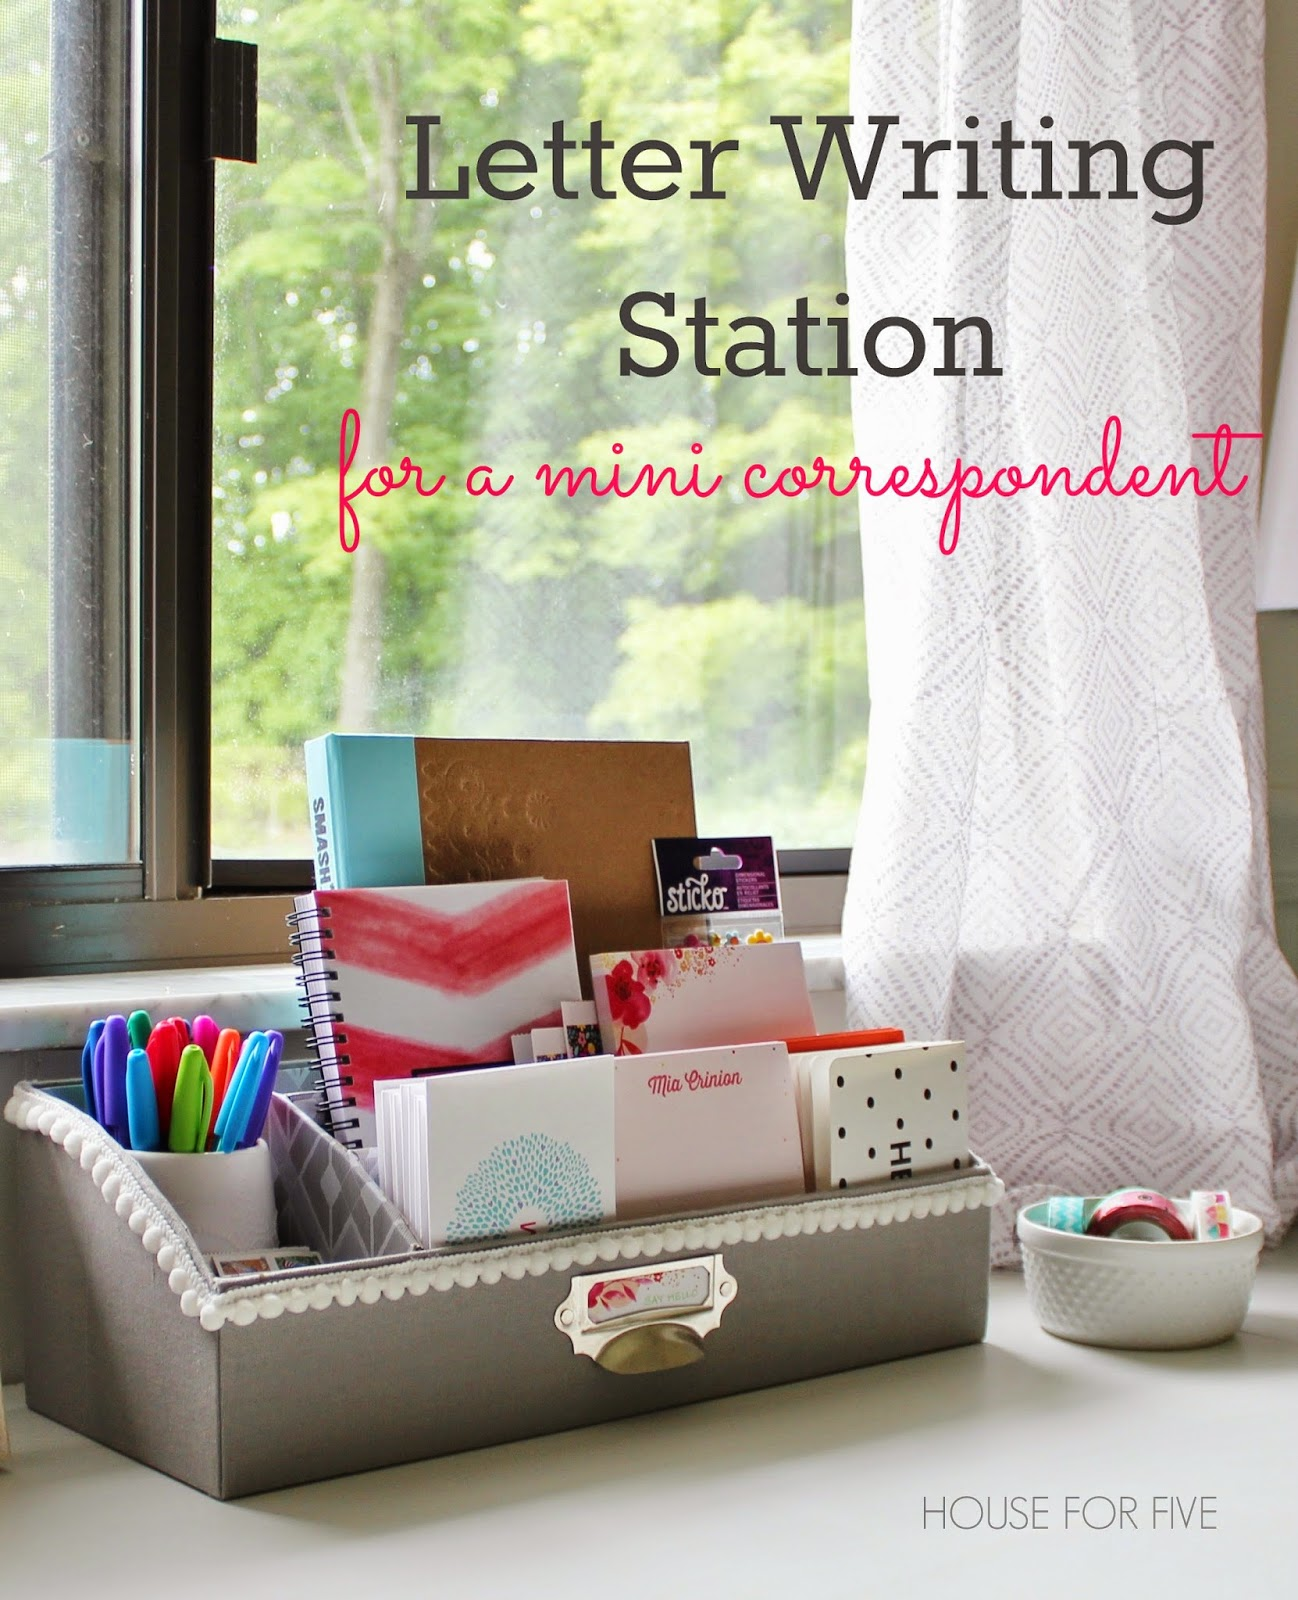 Letter writing station for a little correspondent